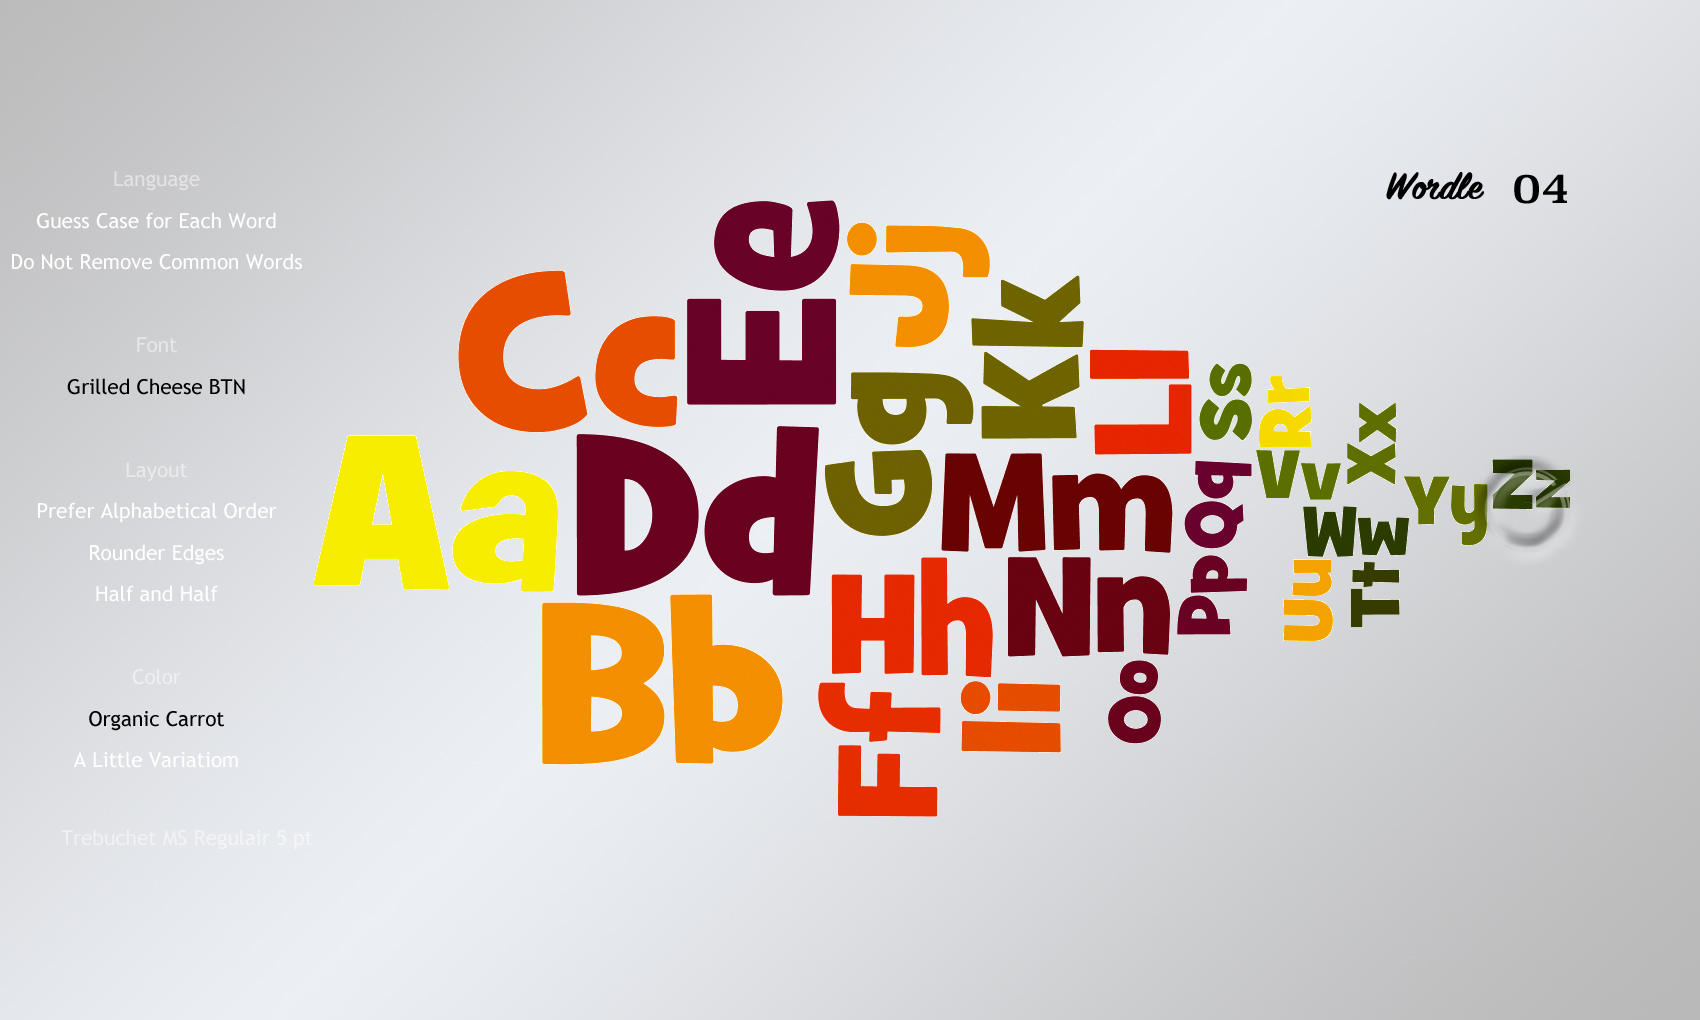 Wordle 04 Grilled Cheese BTN